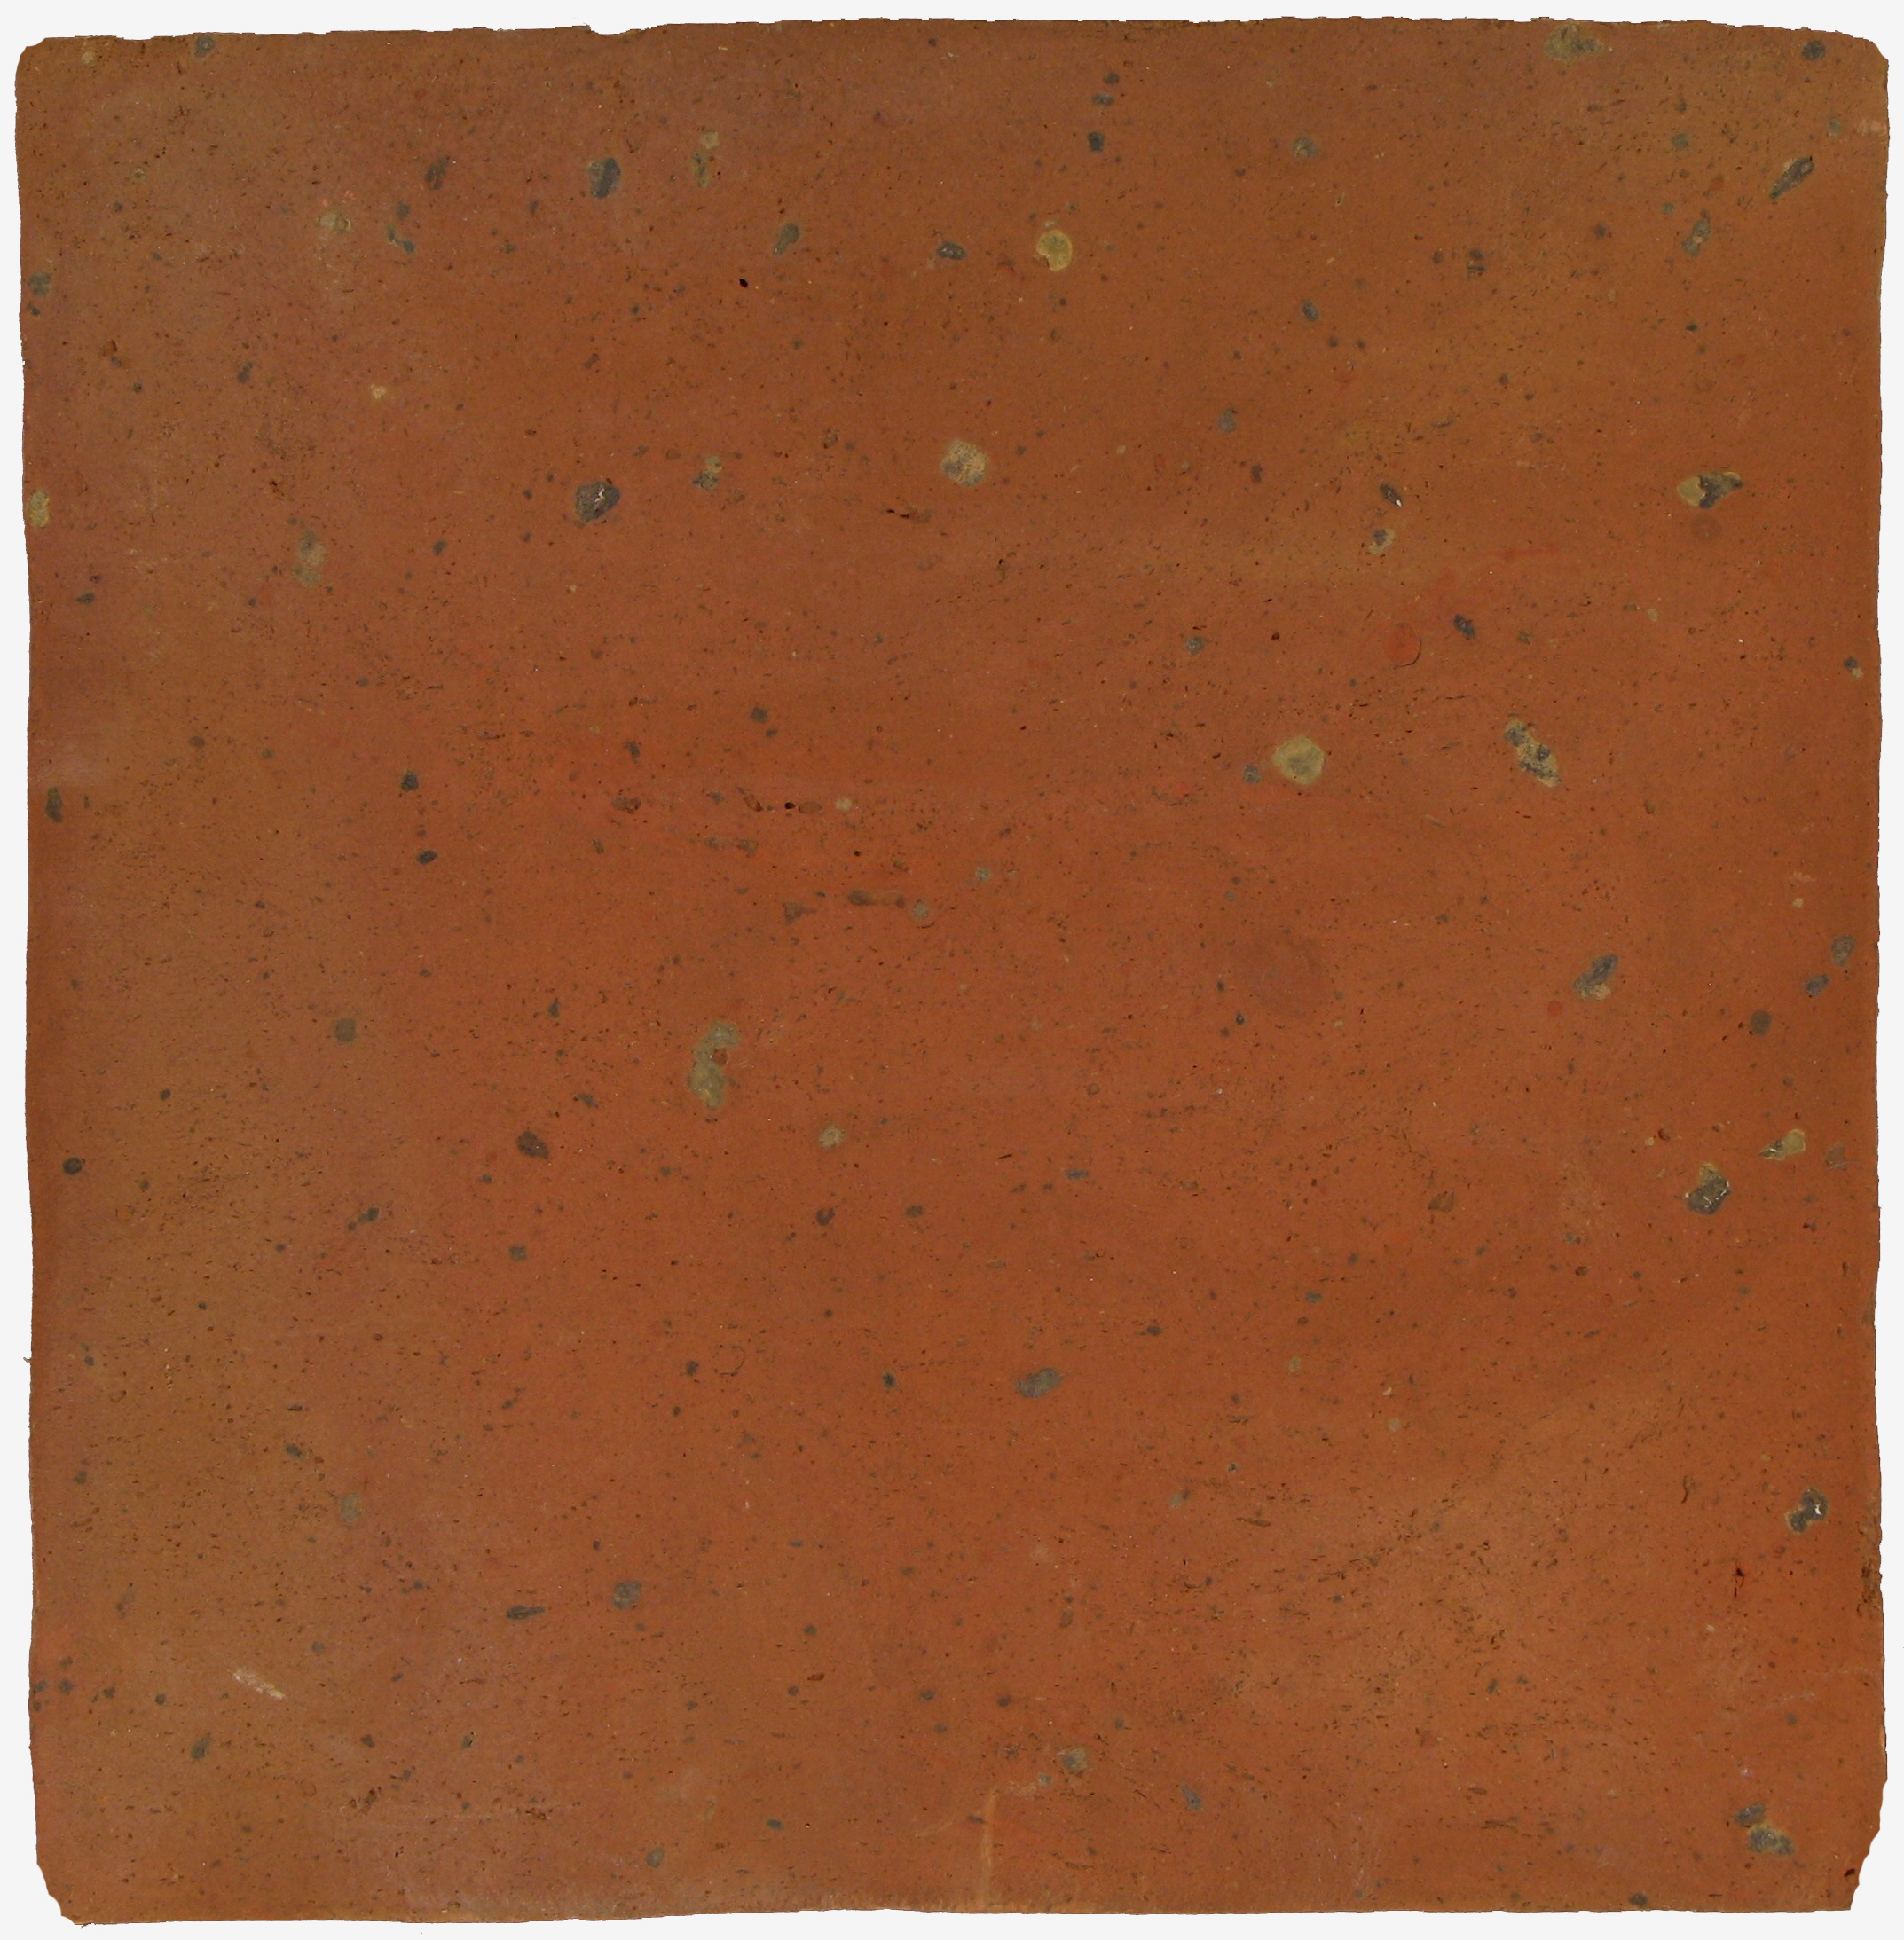 TOSCANA Terracotta & Marble  Terracotta: Cotto LUCCA  Color/Finish: Old Patina ANTIQUE(TCLA)